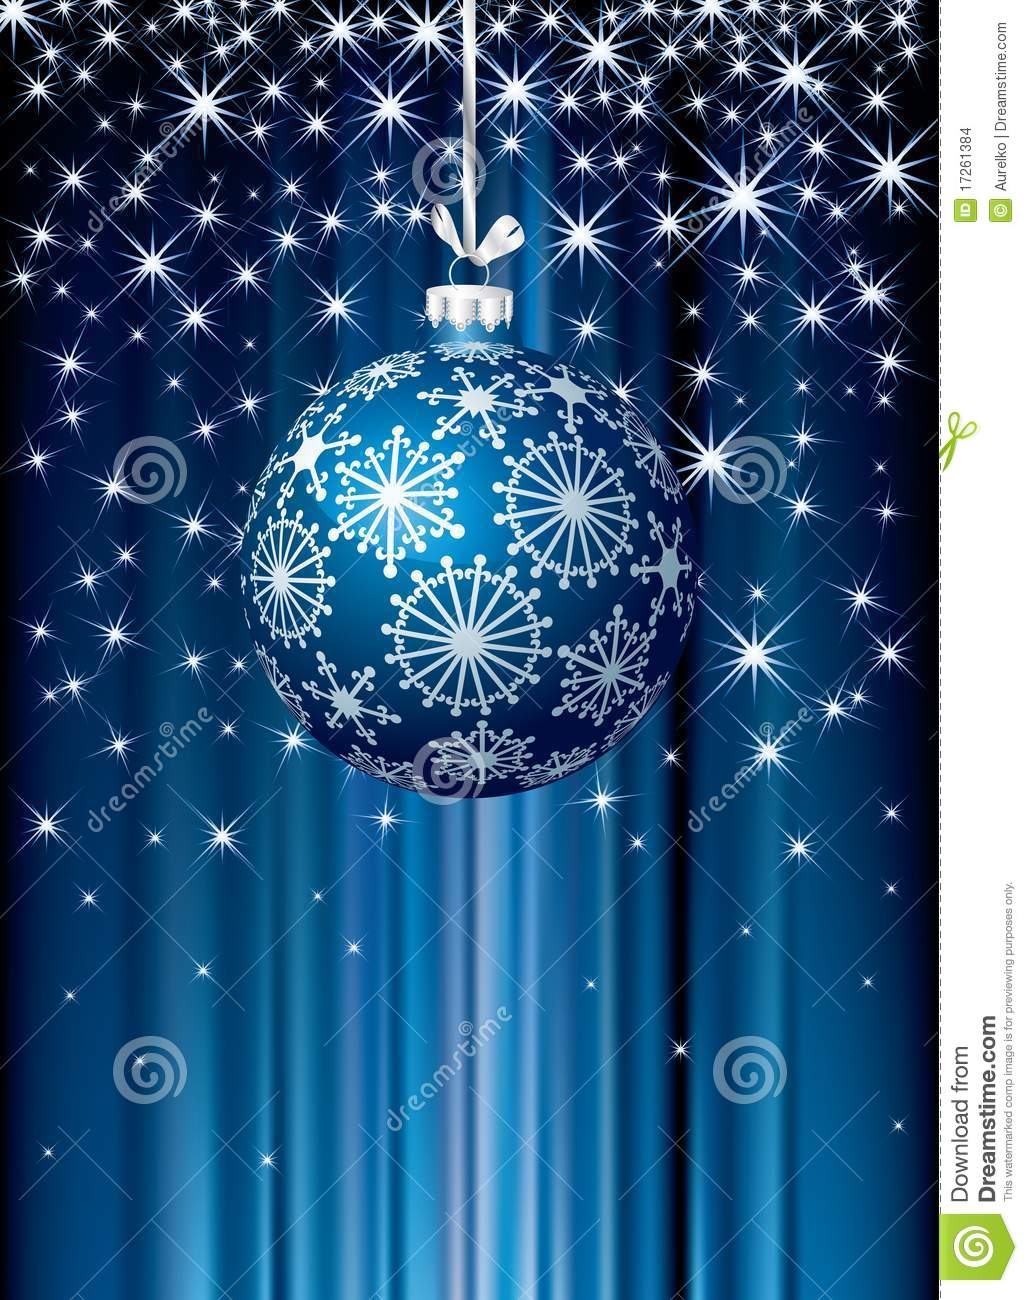 download blue starry christmas stock vector illustration of holiday 17261384 - Starry Christmas